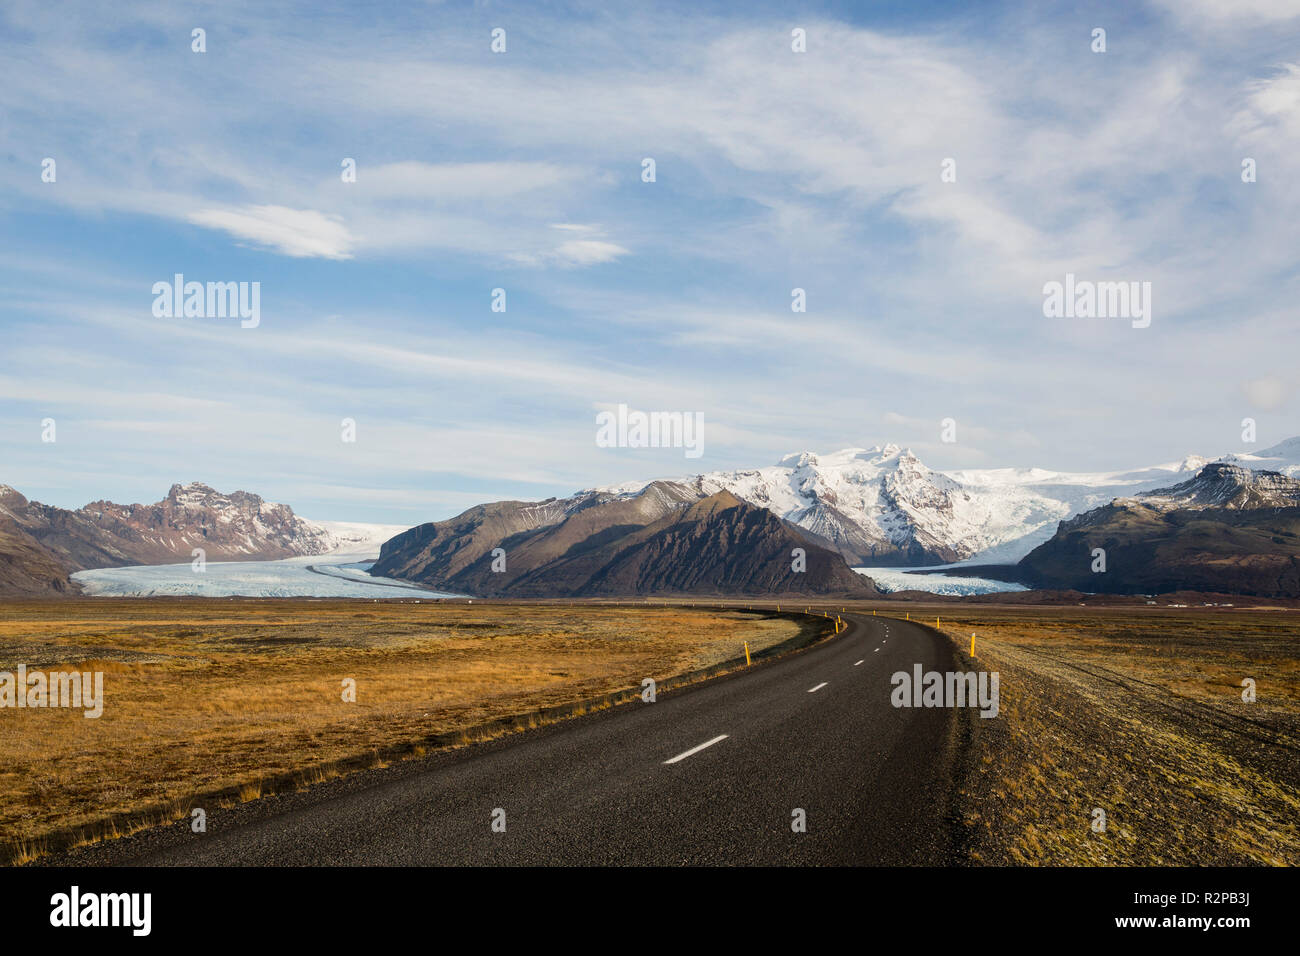 Ring road, bending, no people, leading to the glaciers and glacier tongues of Skaftafell National Park in Iceland - Stock Image